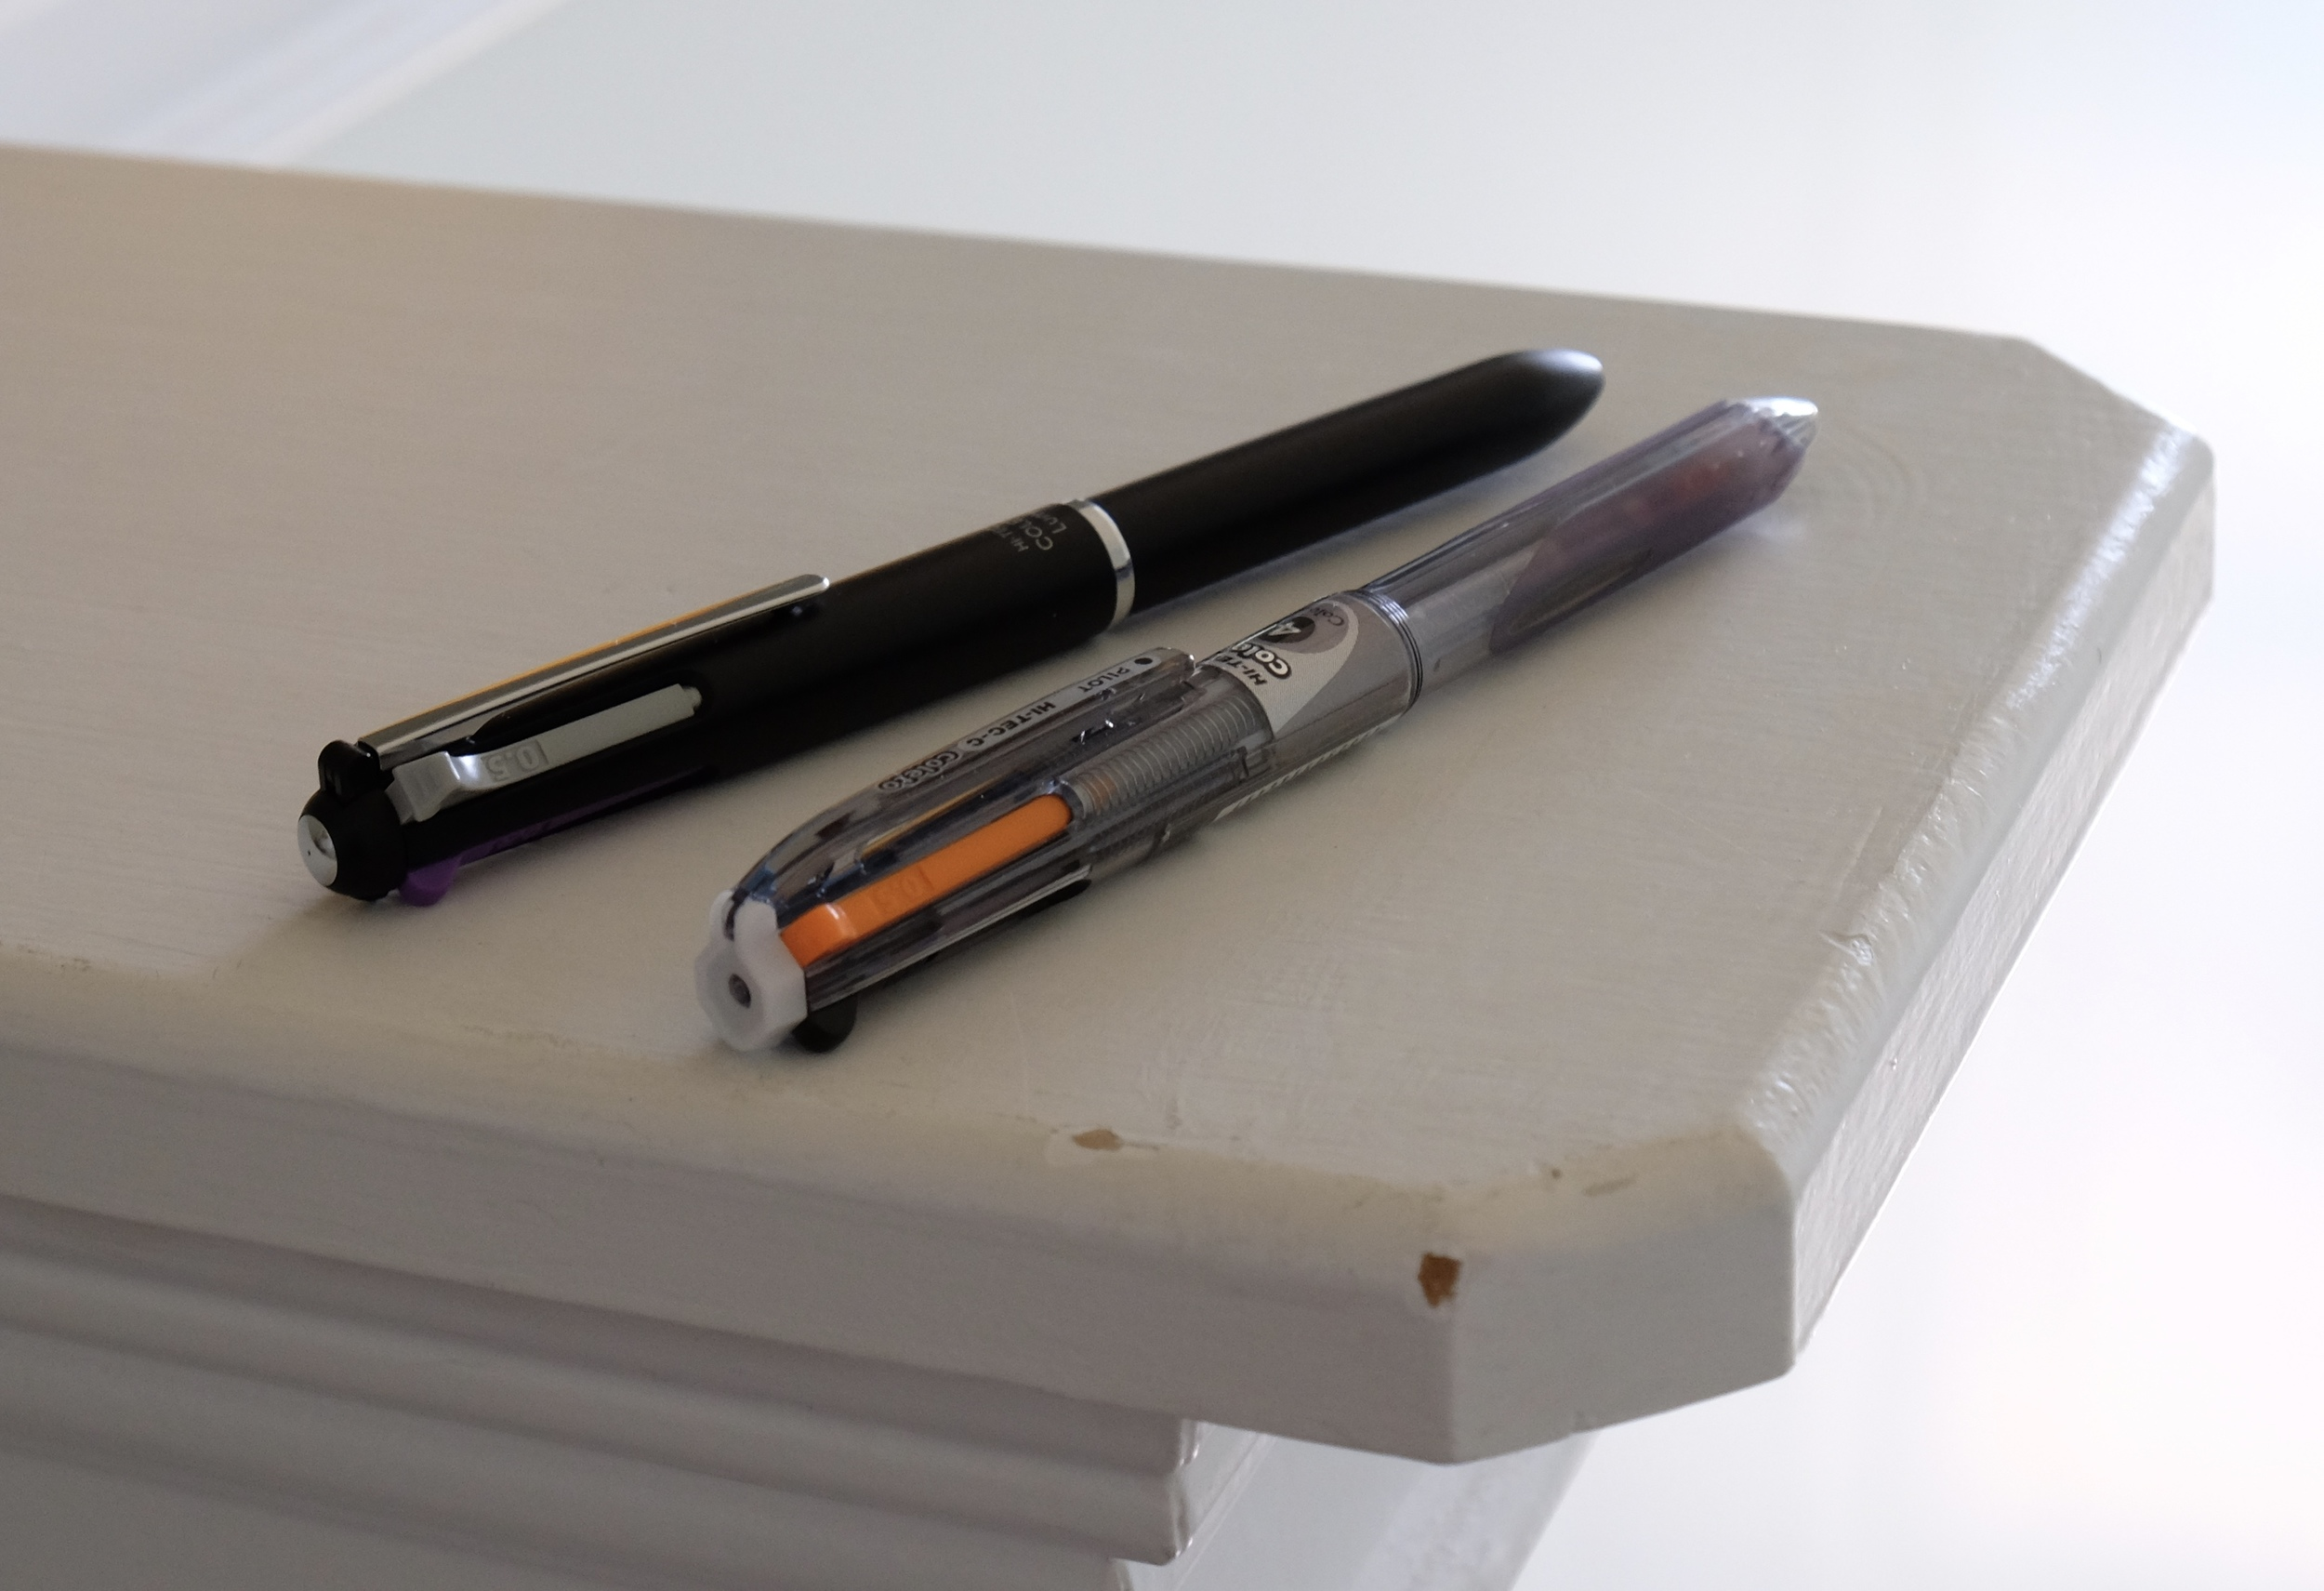 The Pilot Hi-Tec-C Coleto is my favorite multi pen. The top pen is the Coleto Lumio, a slightly higher-end body, and the bottom pen is the standard Coleto, which typically costs around $3.